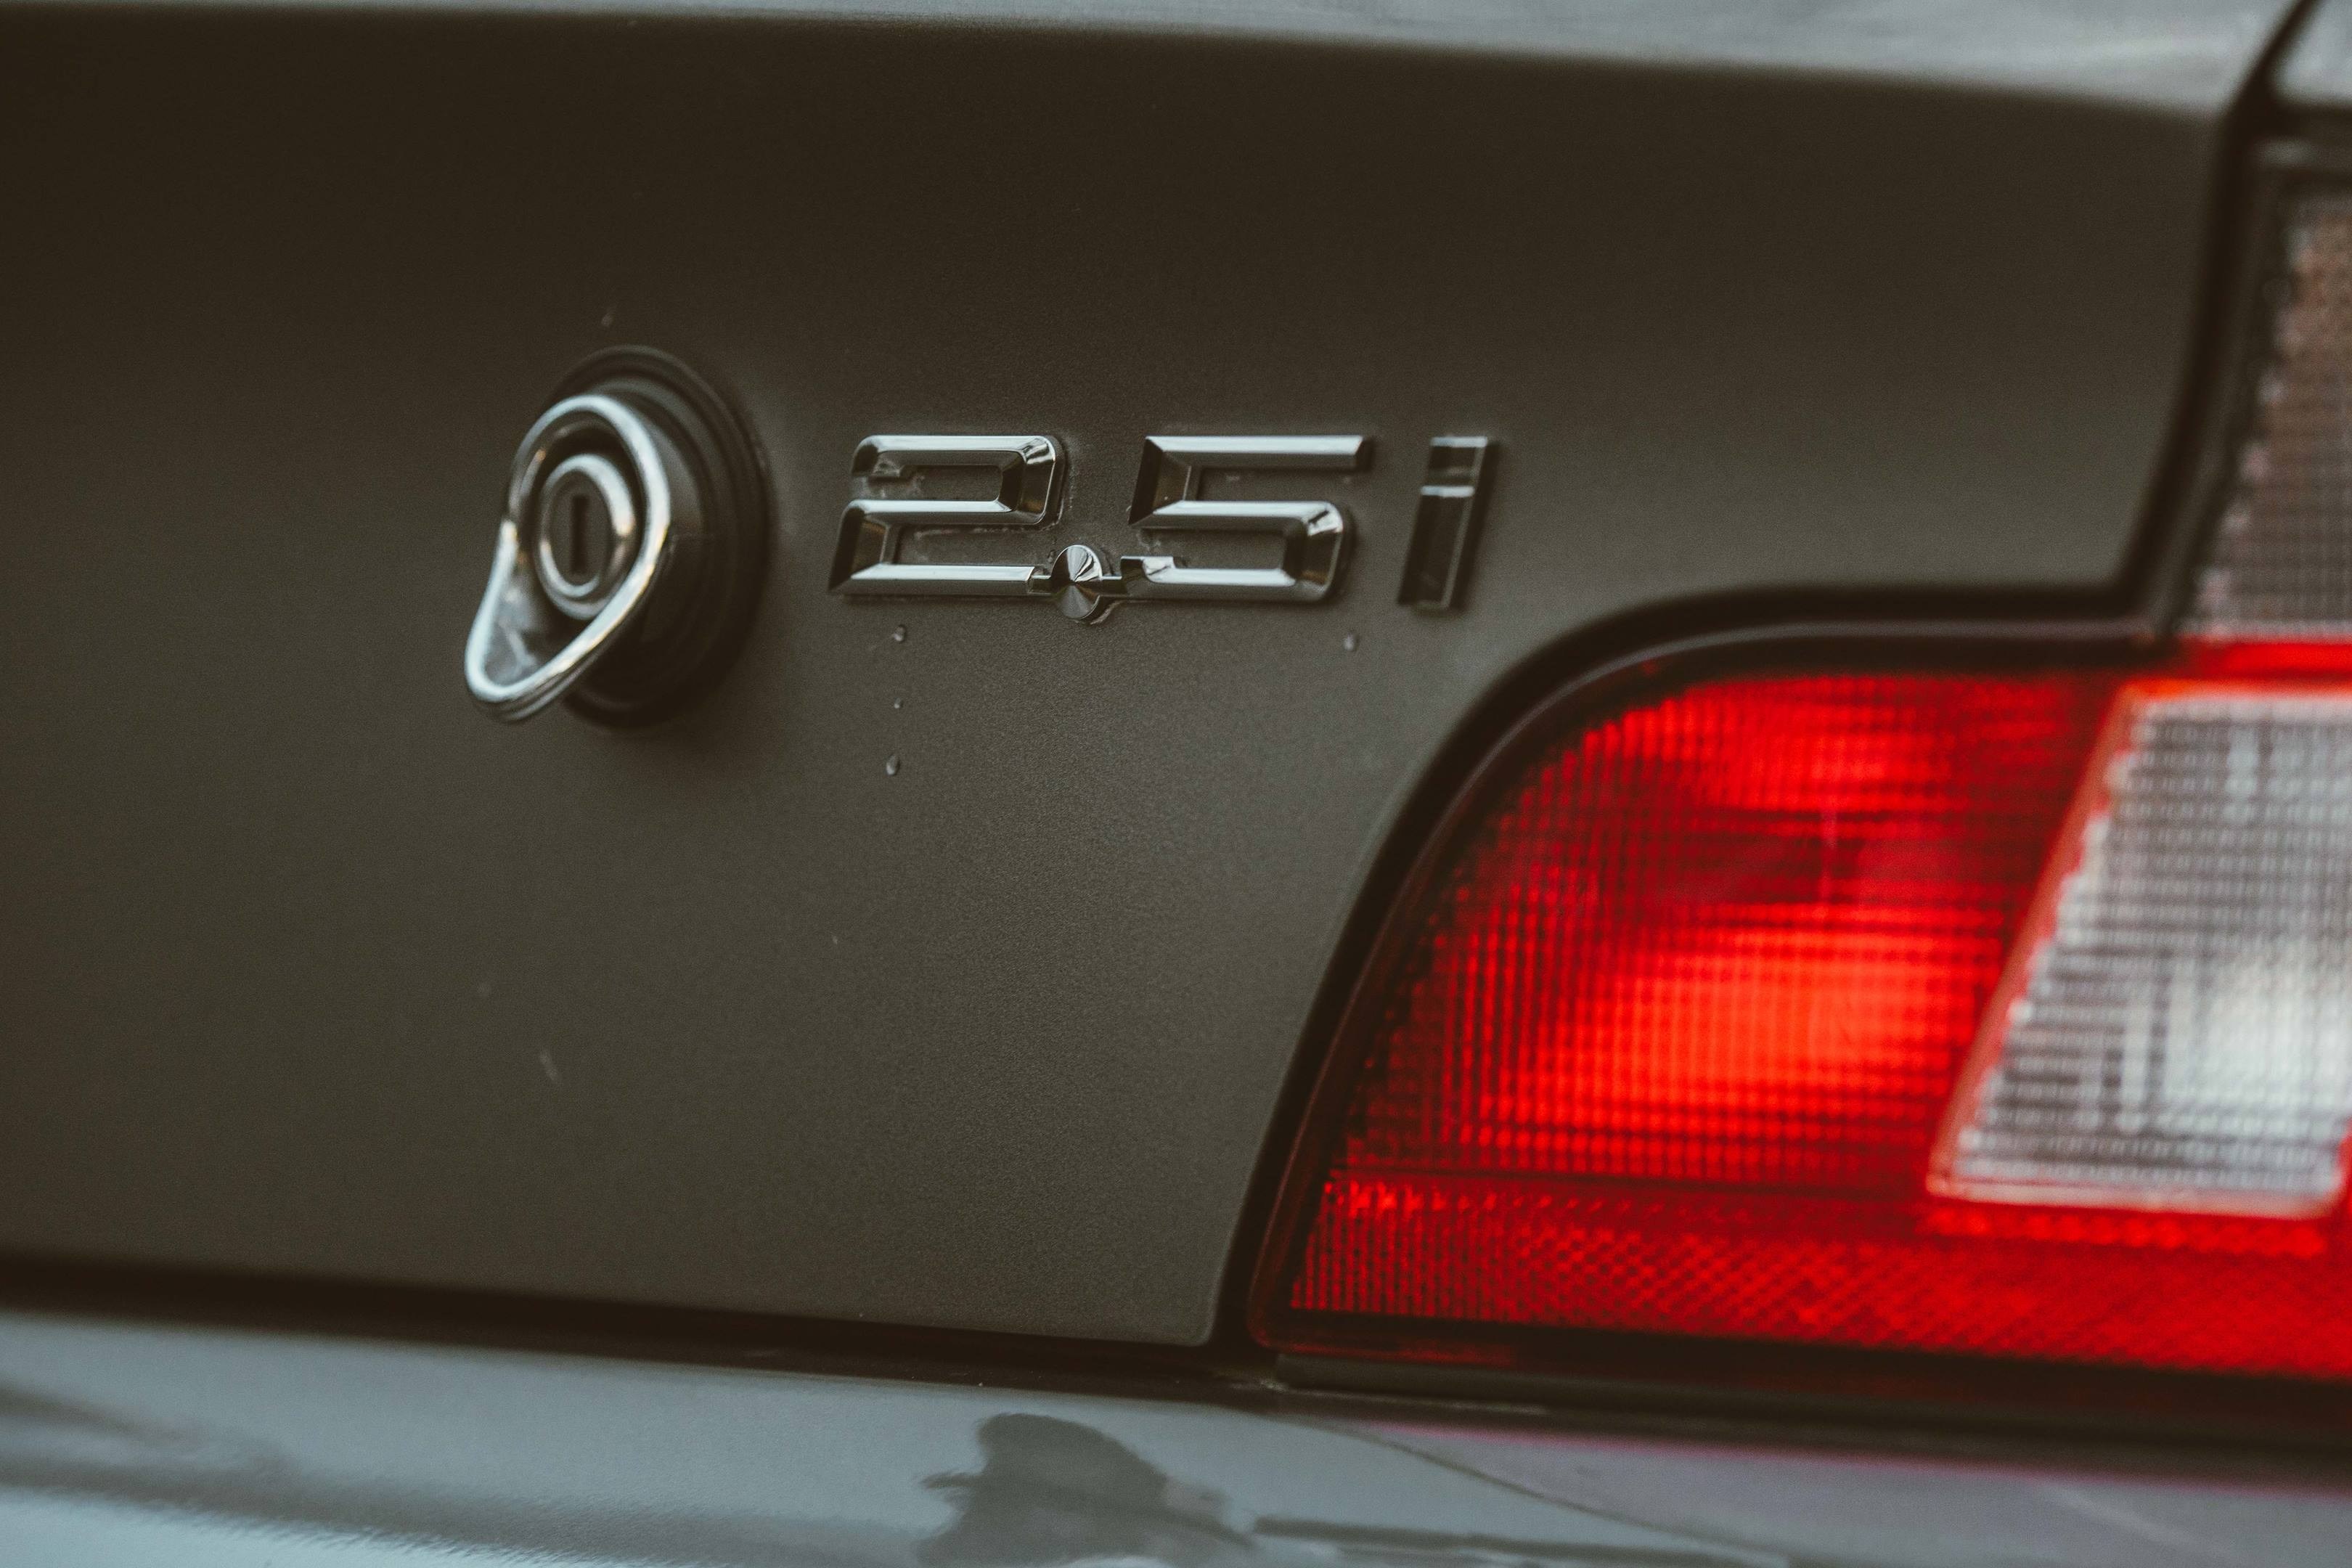 BMW Z3 2.5i badge detail